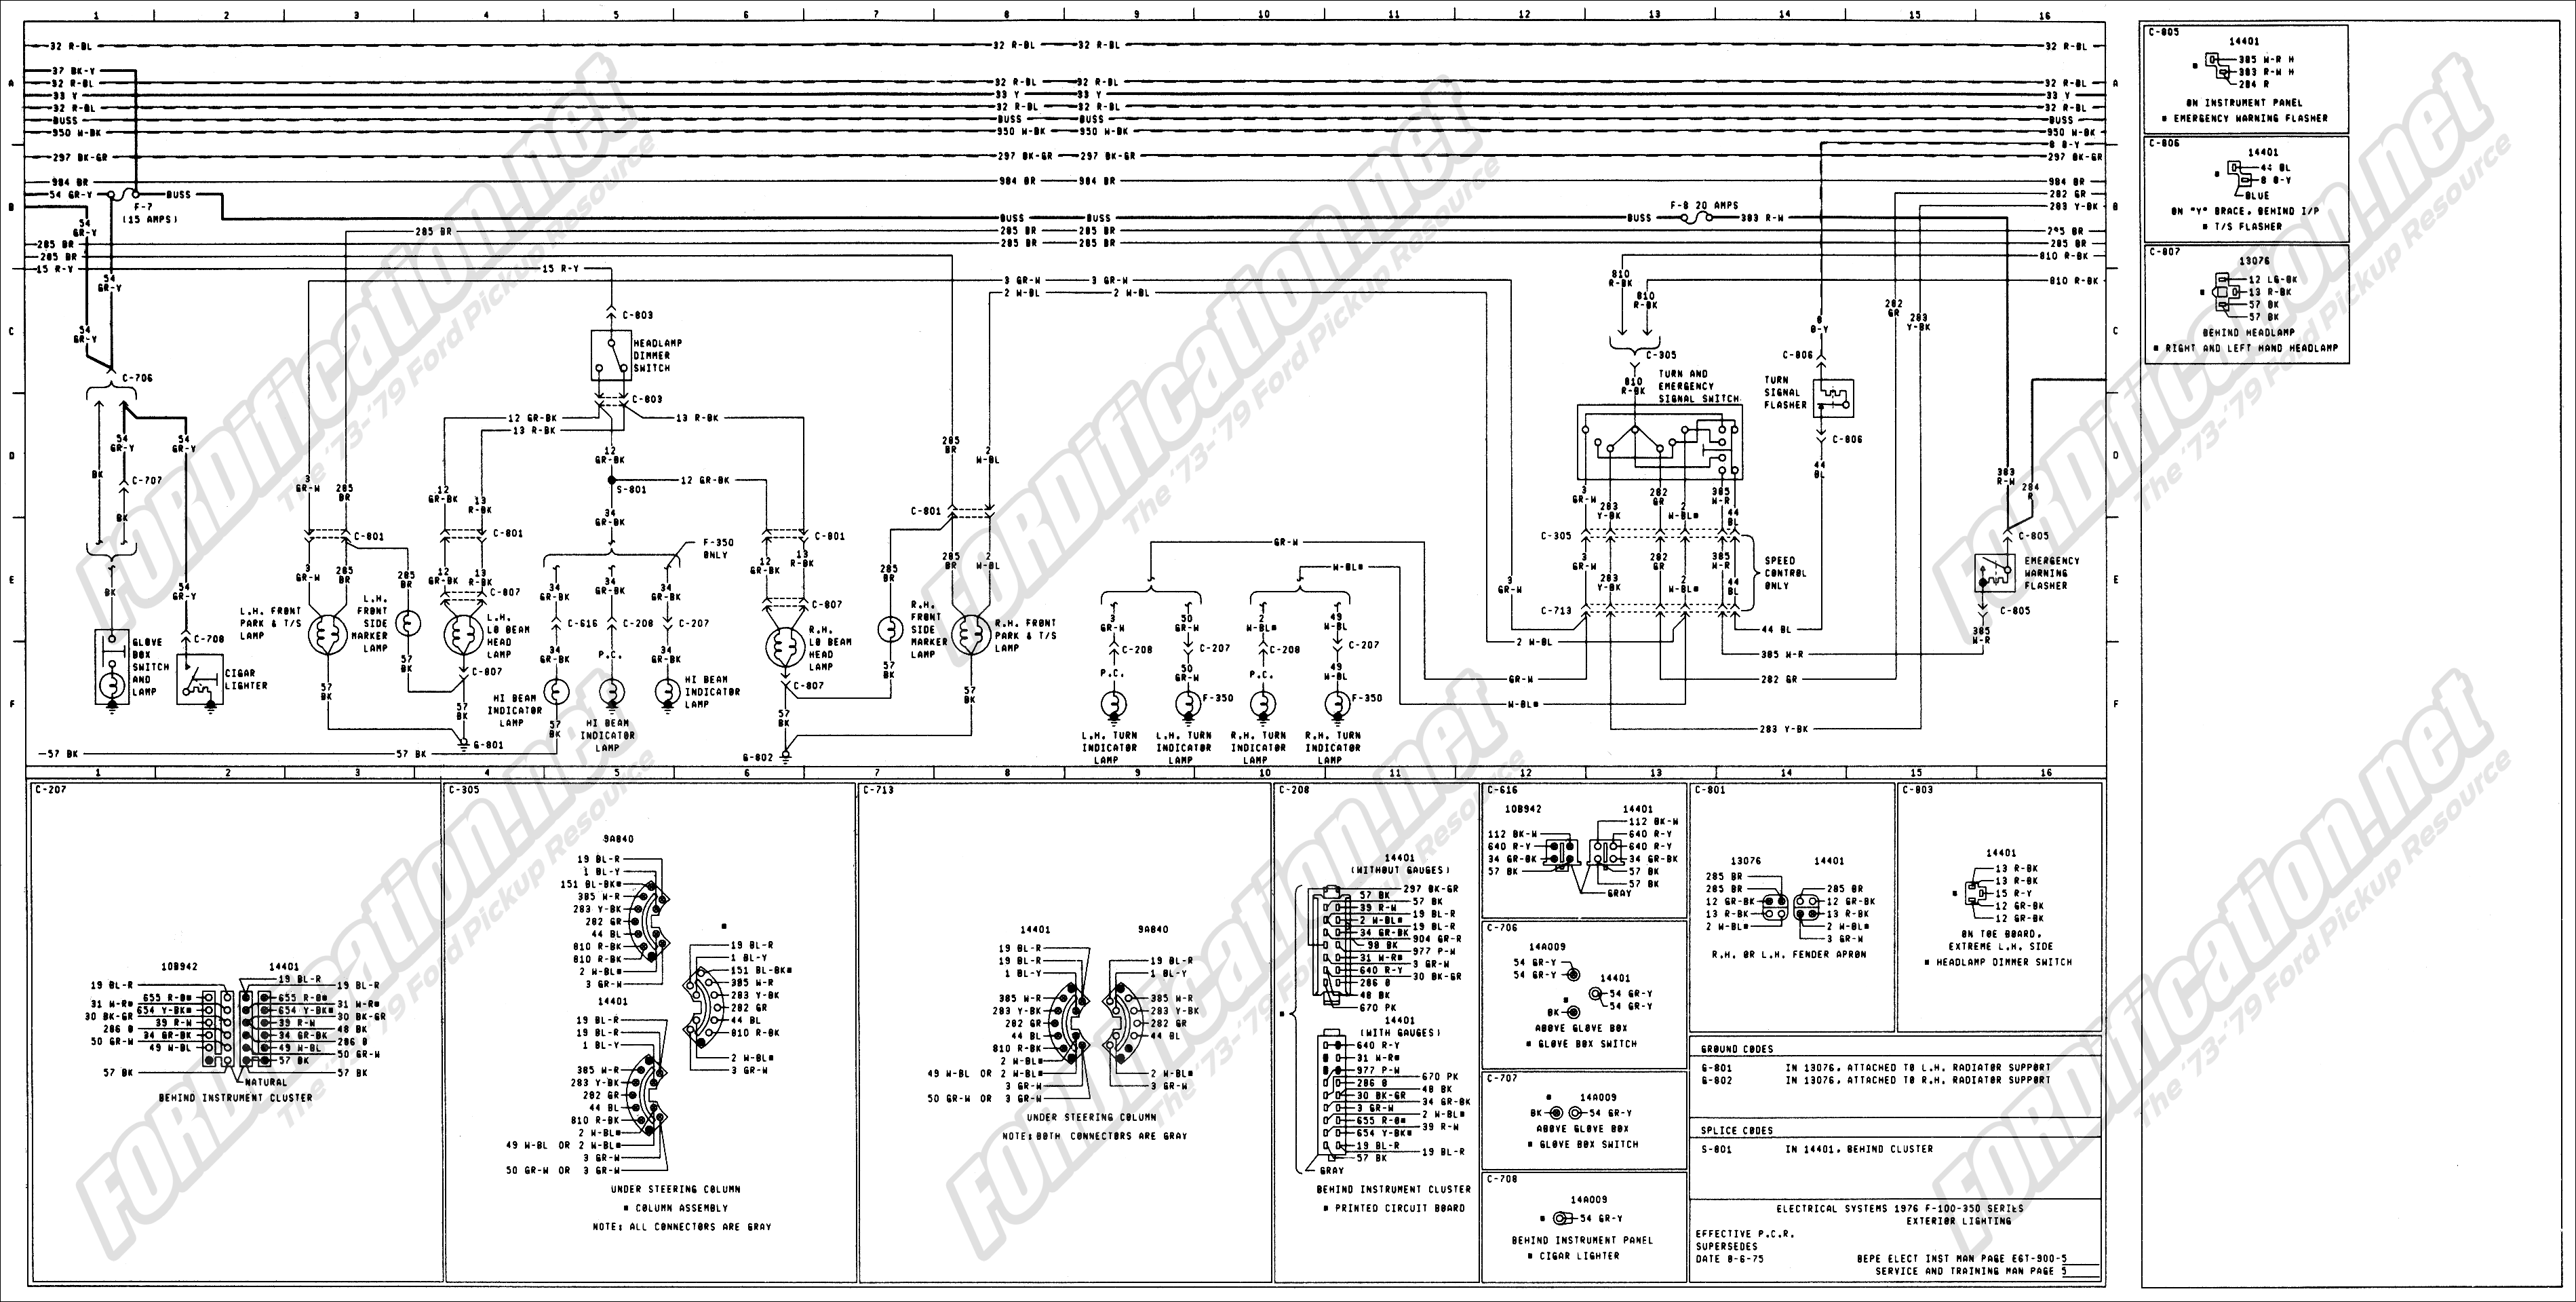 1976 ford wiring diagram database wiring diagram1979 ford f 250 wiring  diagram touch wiring diagrams 71